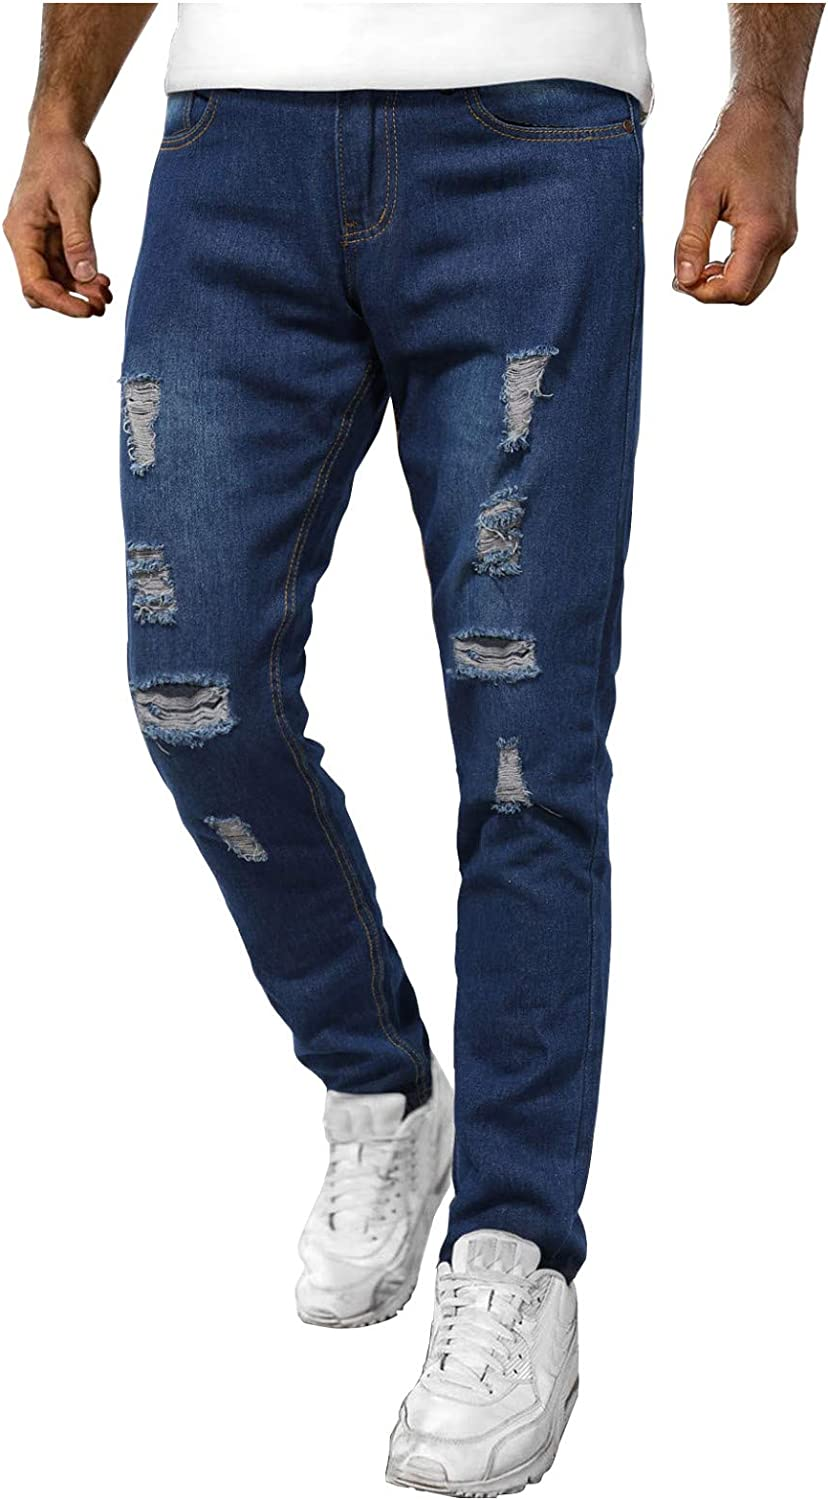 Men's low-pricing Relaxed Fit Jeans Mens Ranking TOP1 Skinny Sl Jean Classic Regular